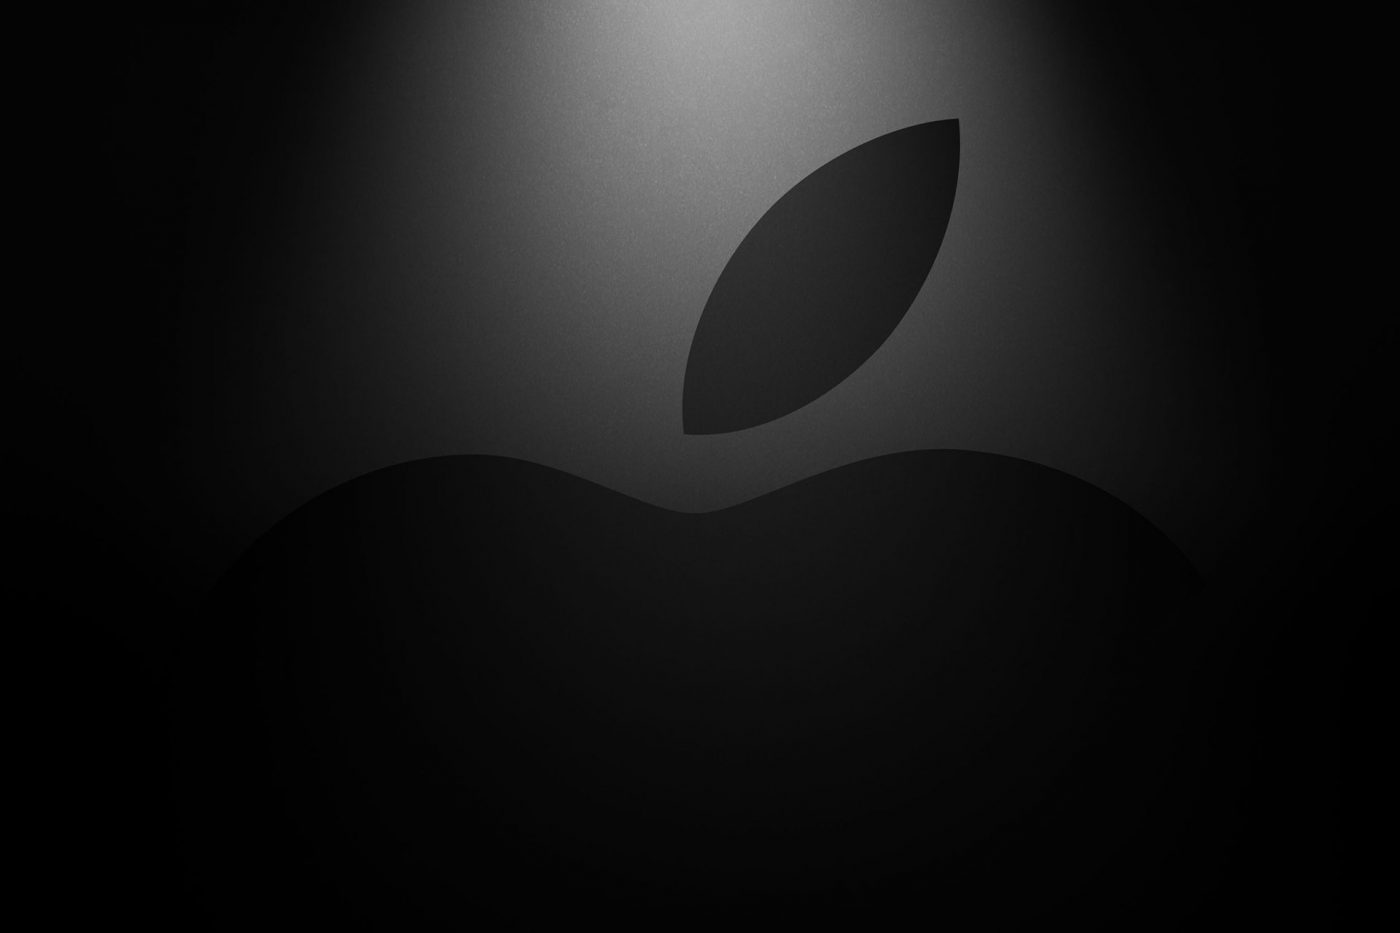 Apple-It-is-showtime-event-apple-logo